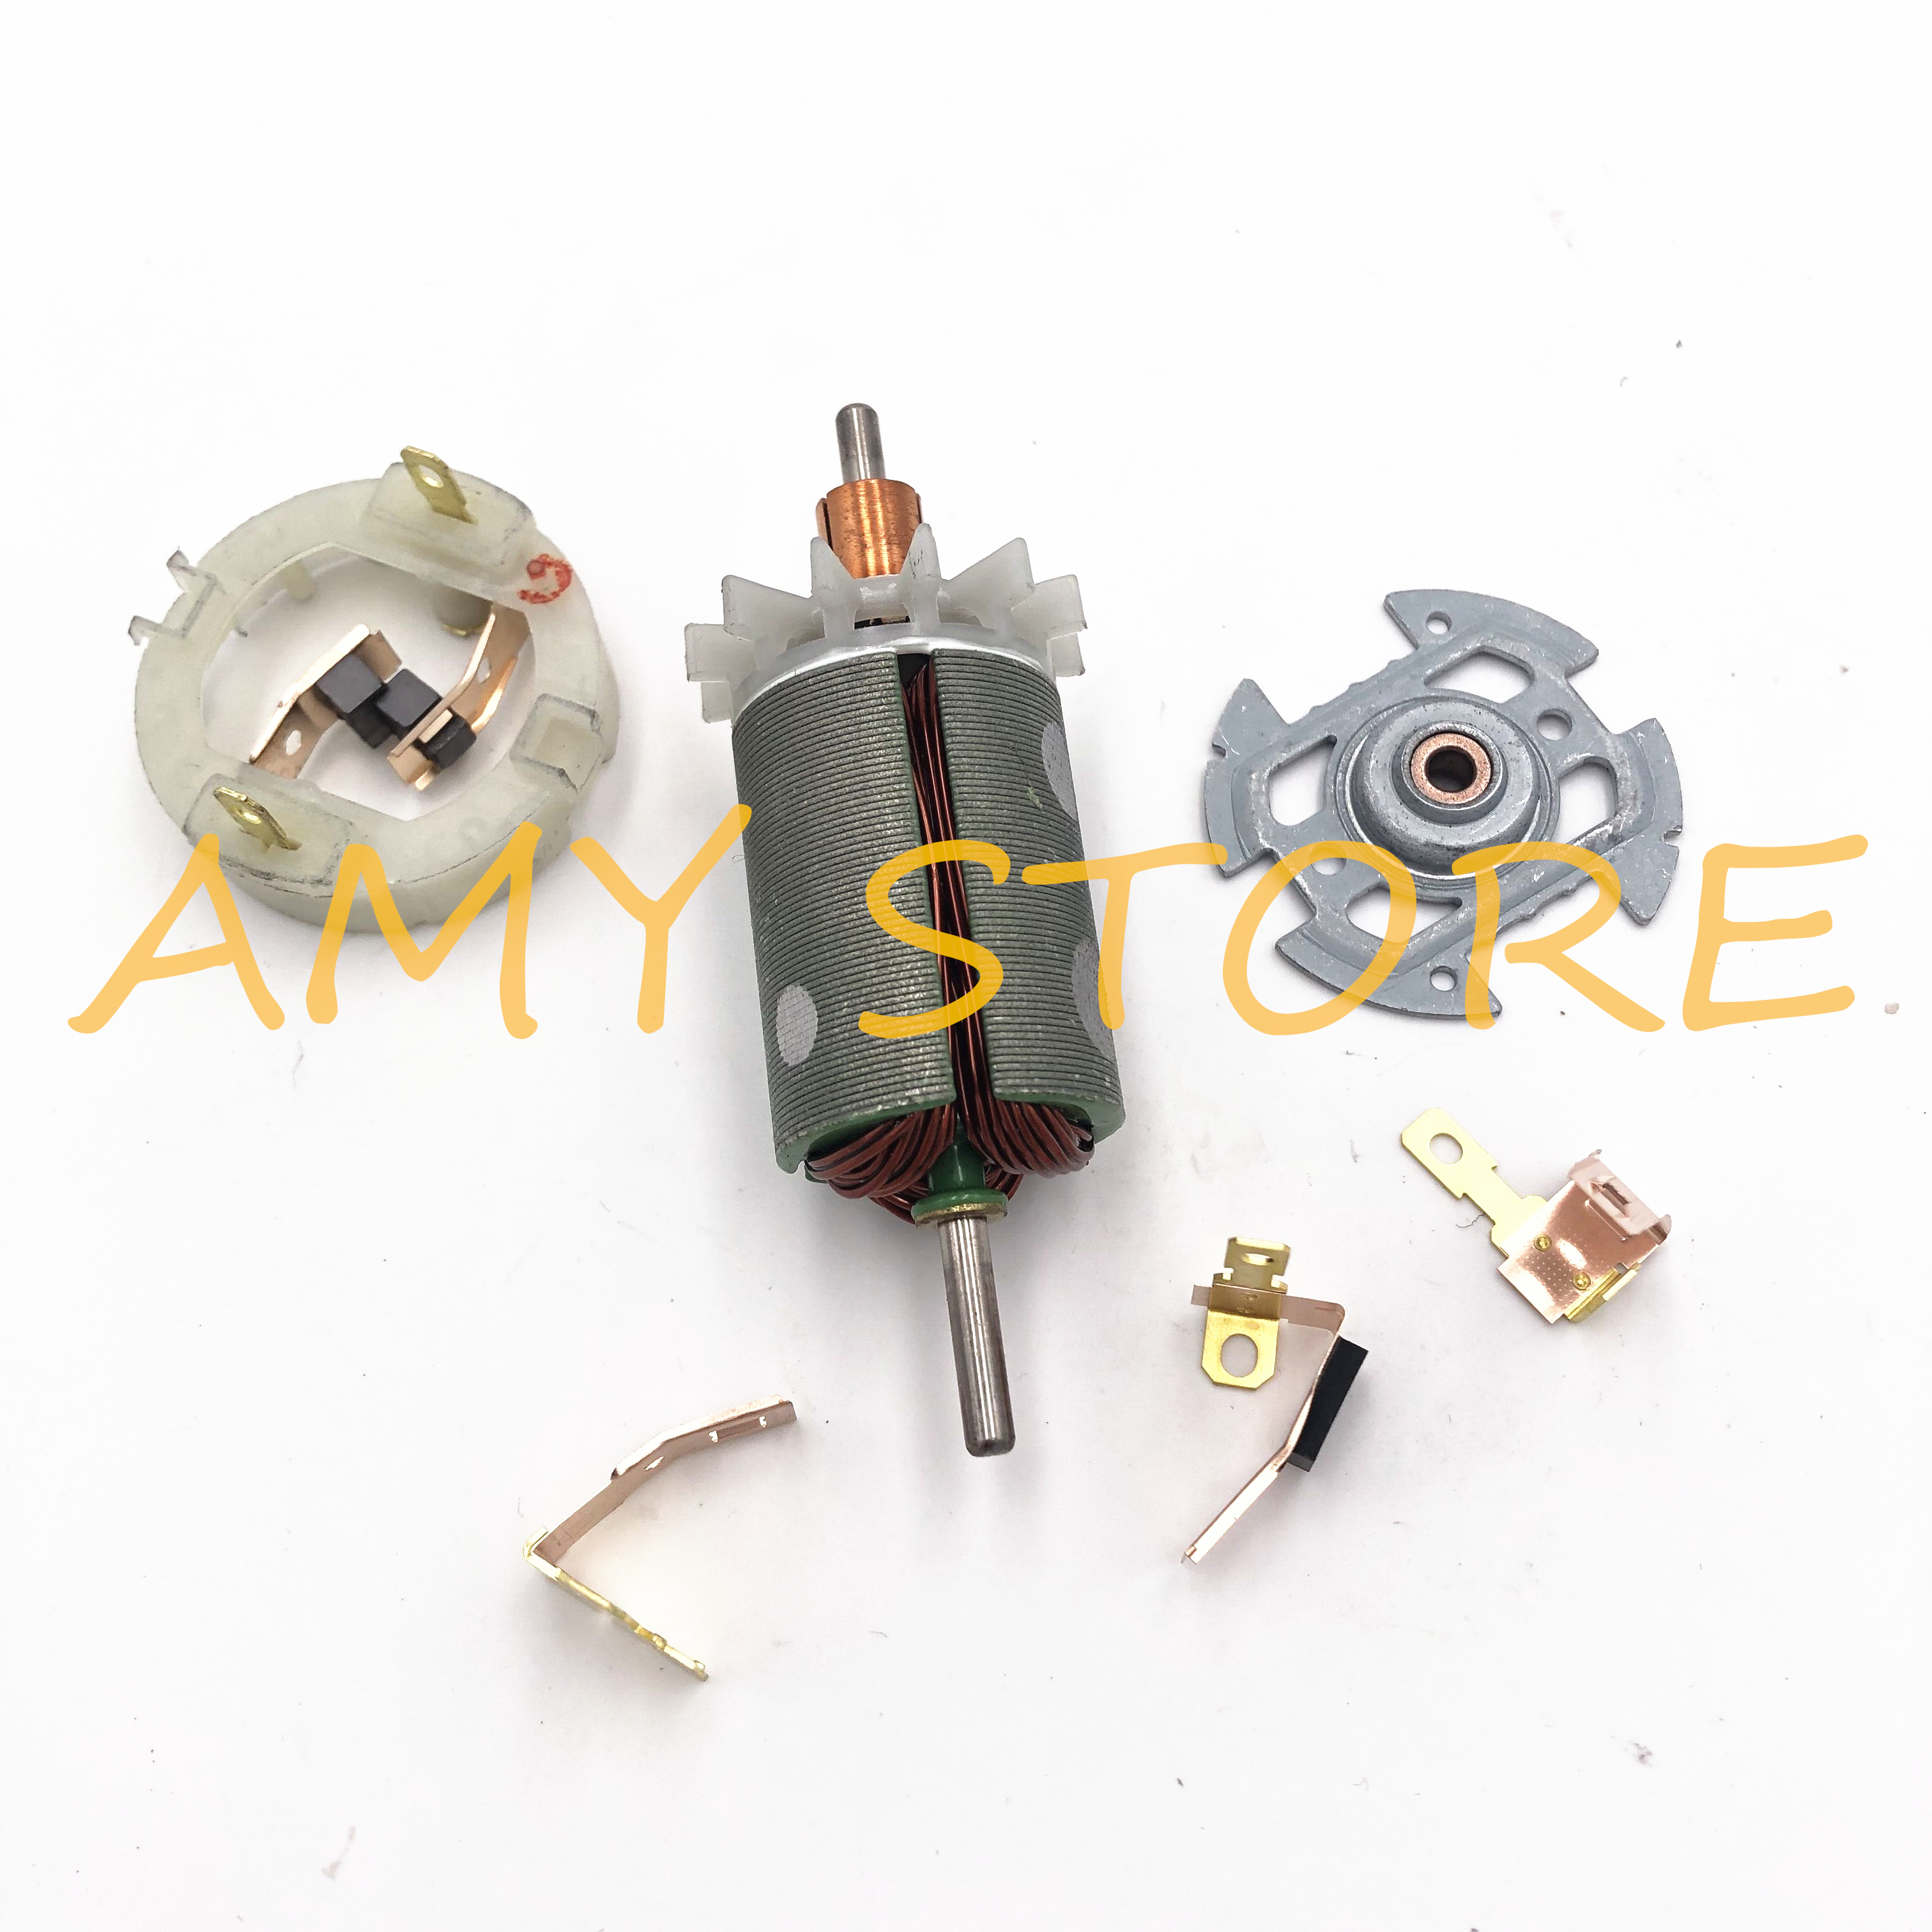 RS540 545 550 555 Motor Rotor Carbon Brush Holder End Cap Cover Replace For 12VDC Cordless Screw Driver Drill